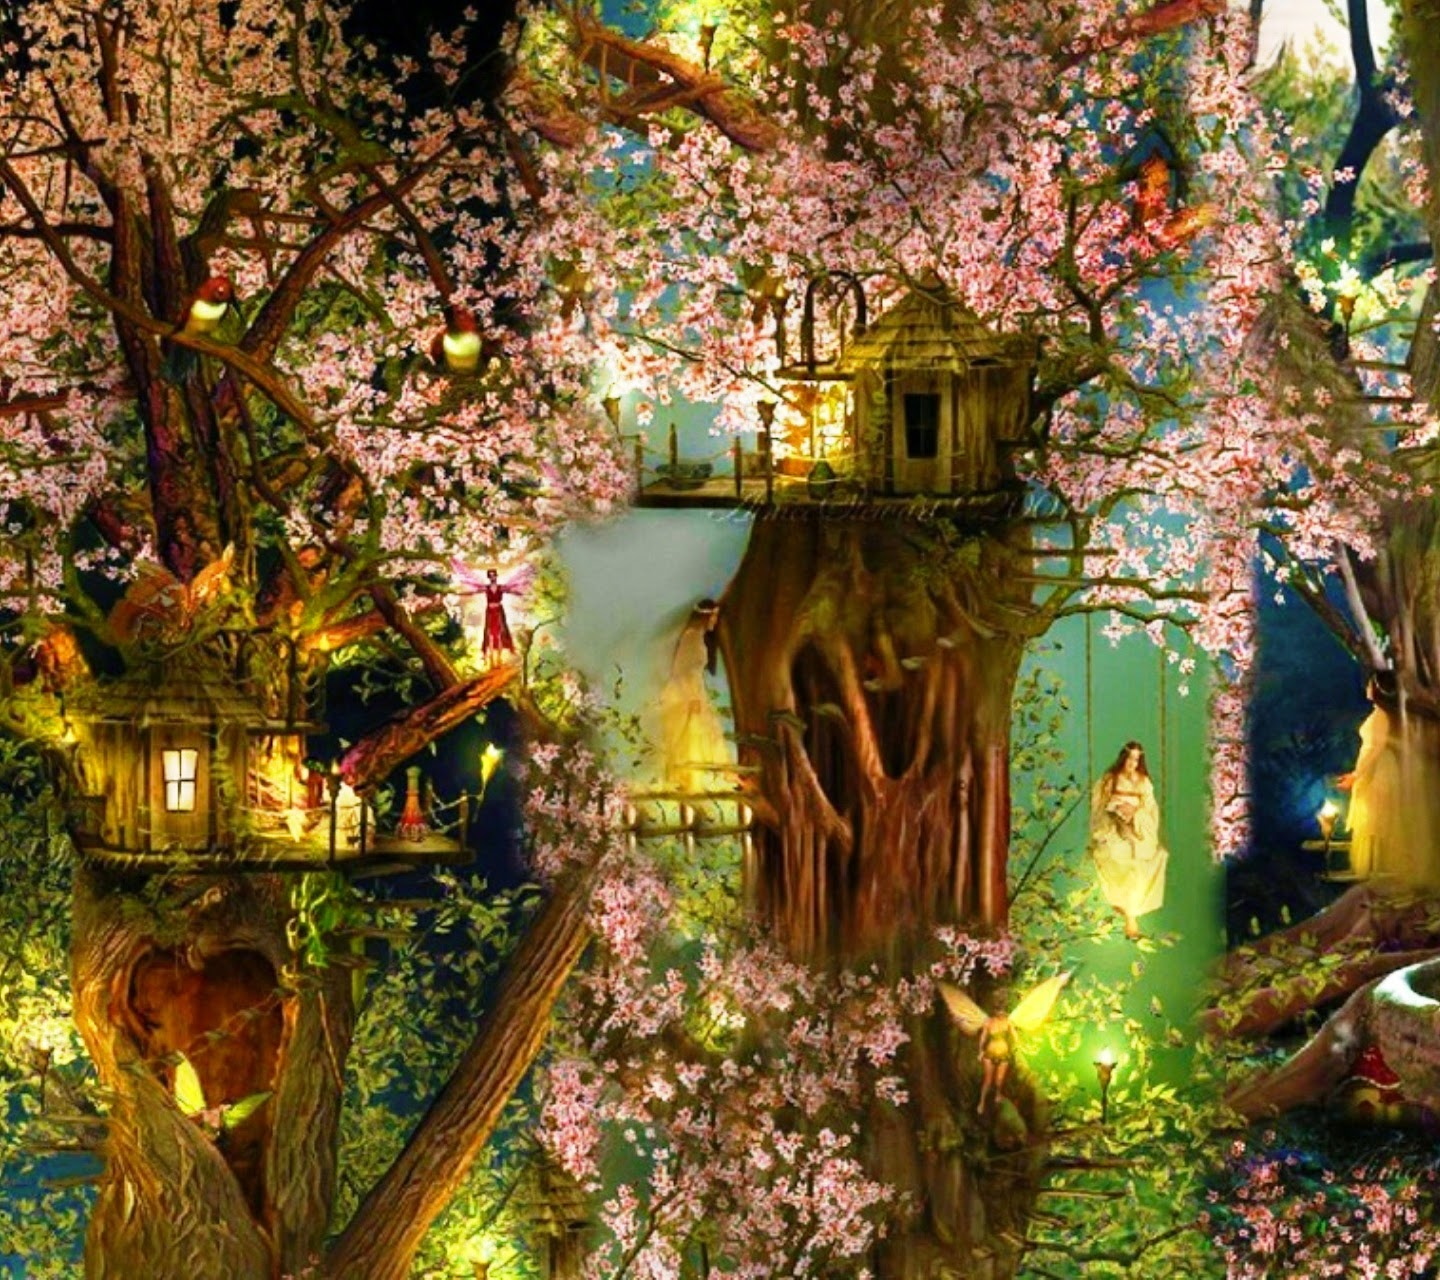 Beautiful Tree House fantasy fairy tale images pictures HD ...